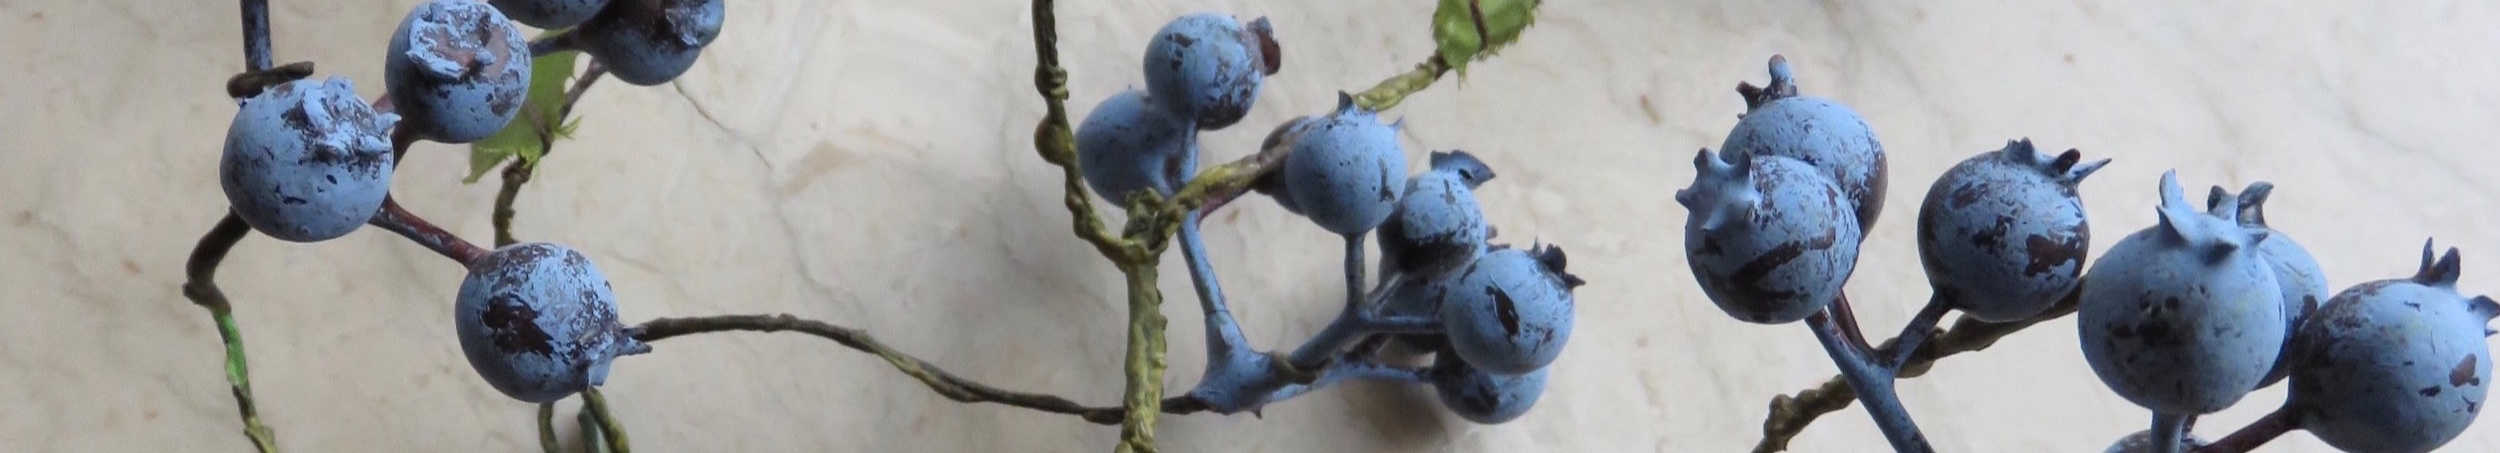 An Artistic Image Of Blueberries For  Emotional Wave Therapy